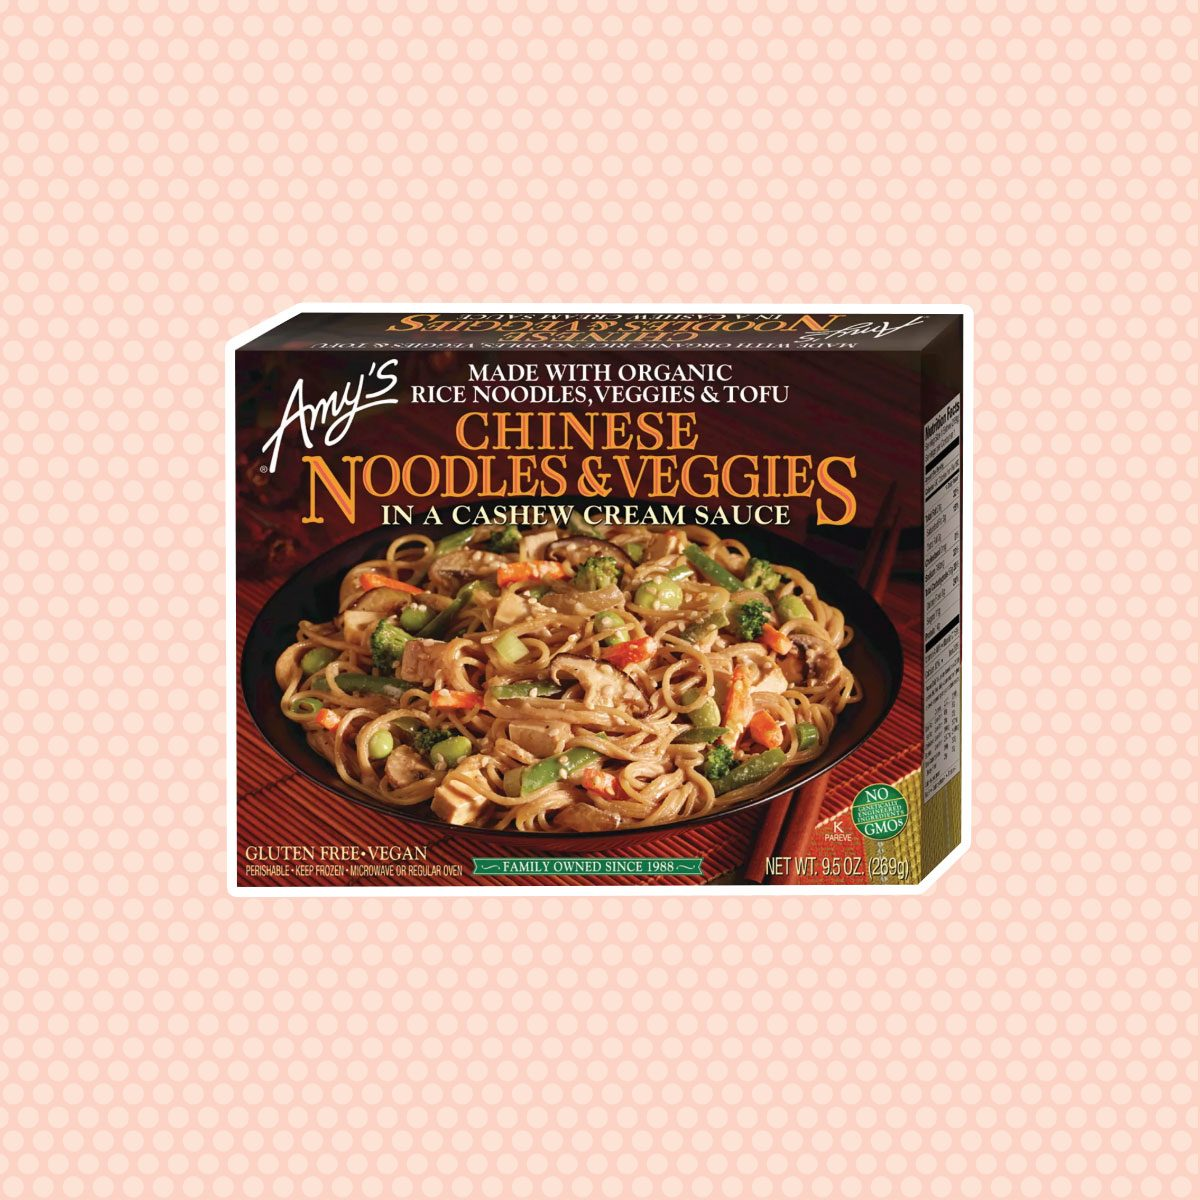 Amy's Chinese Noodles with Frozen Veggies in a Cashew Cream Sauce - 10oz